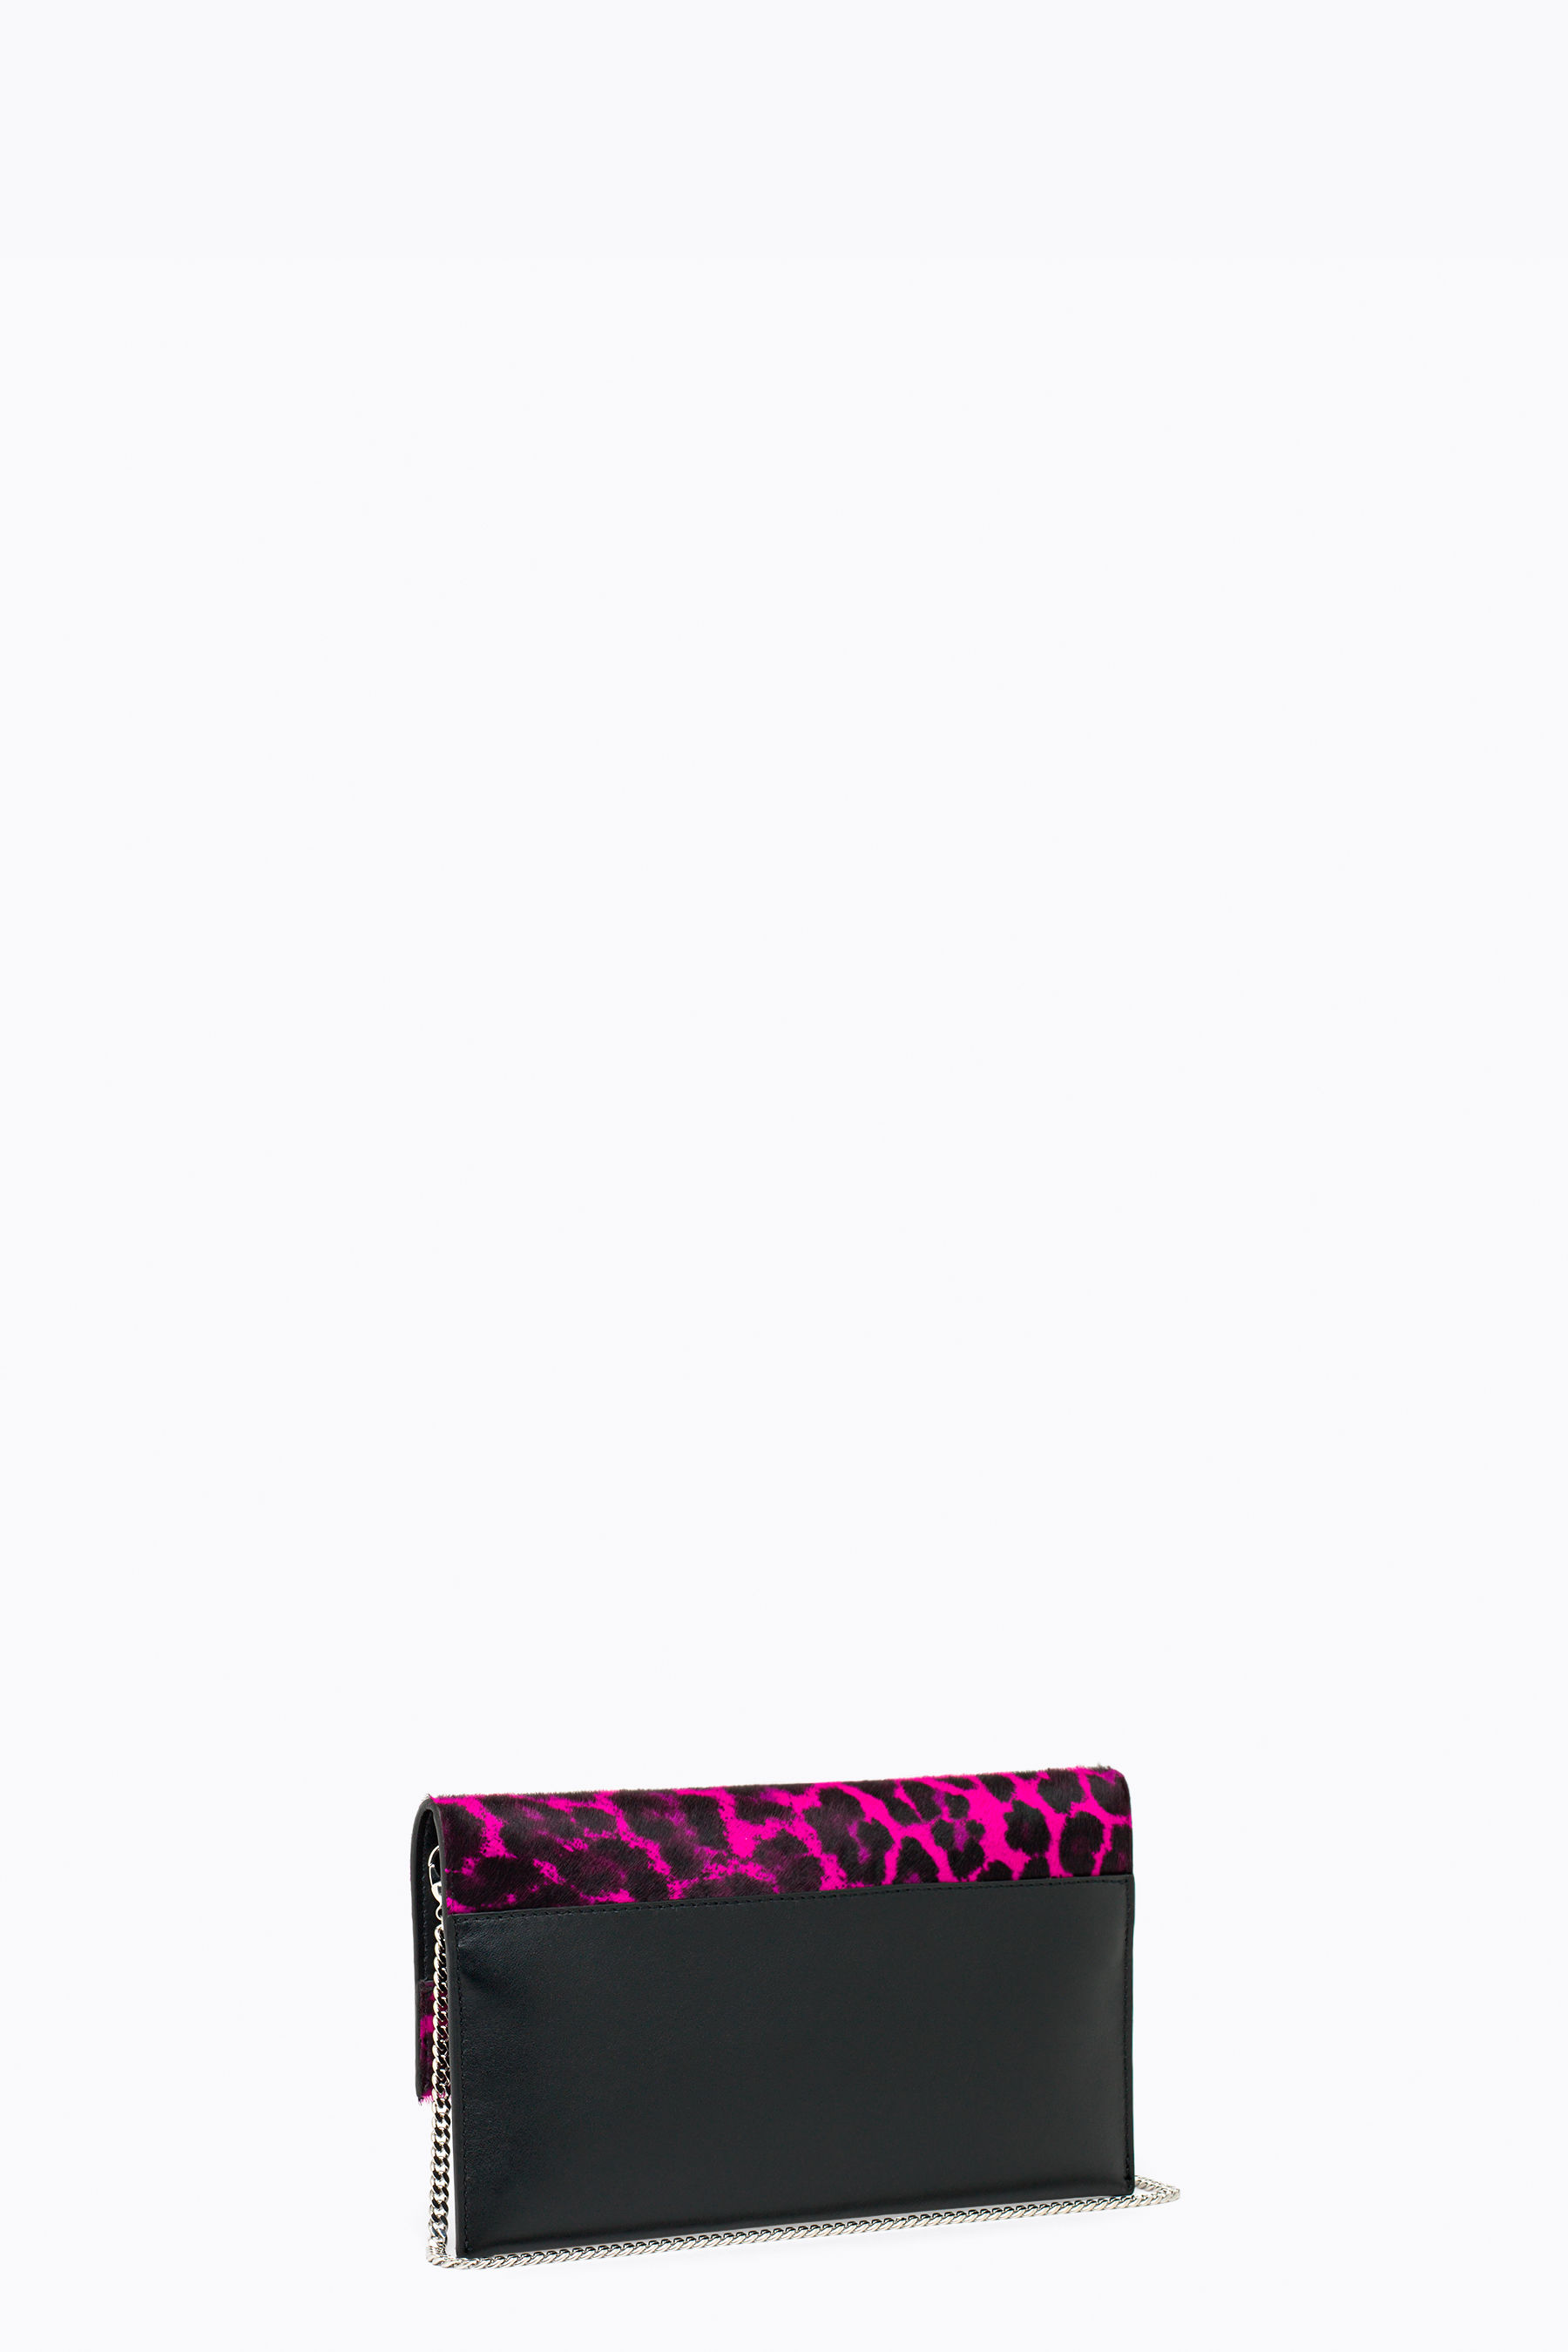 Piping animalier clutch